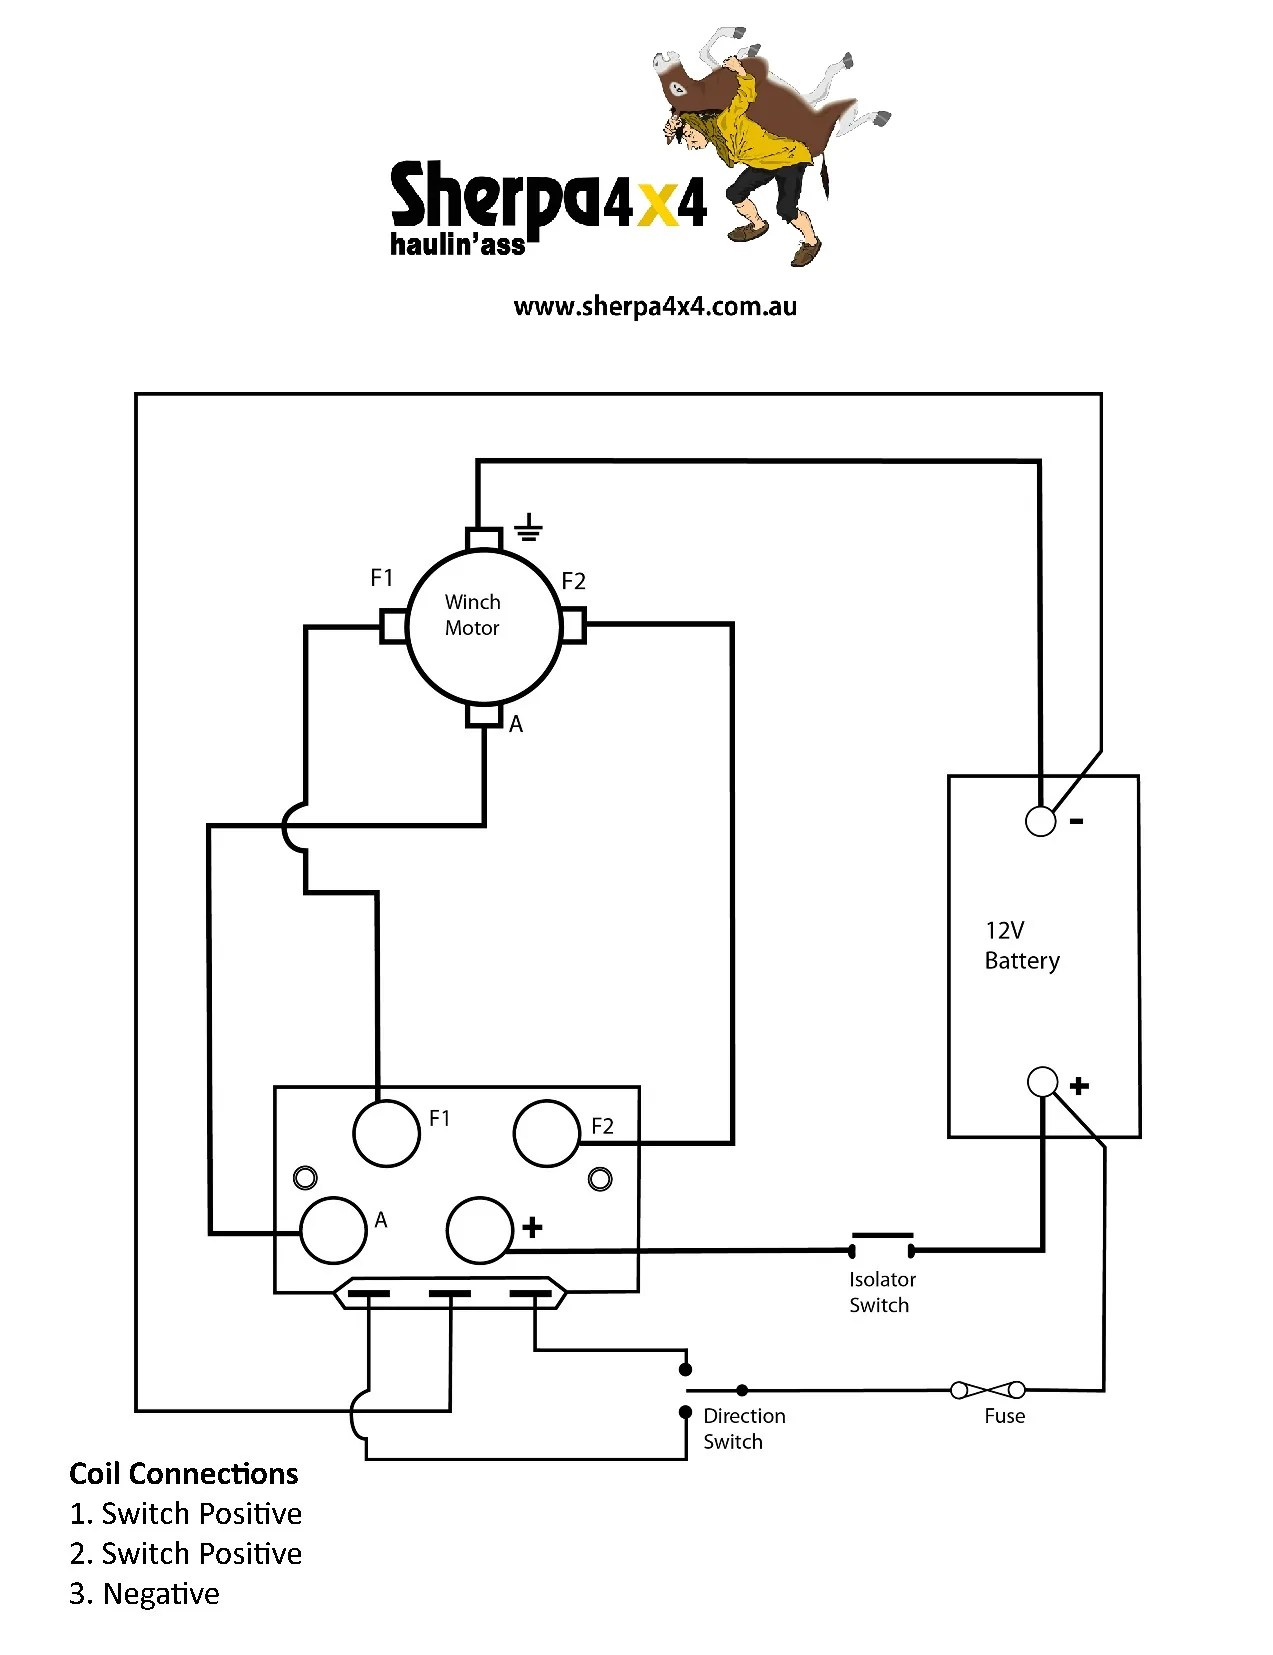 Winch Control Wiring Diagram likewise X9 Superwinch Wiring Diagram besides Polaris Winch Wiring Diagram in addition Large Winch Switch as well Warn Winch M8000 Wiring Diagram     Jeepforum   Forum F9 Cab. on 12 volt warn winch solenoid wiring diagram